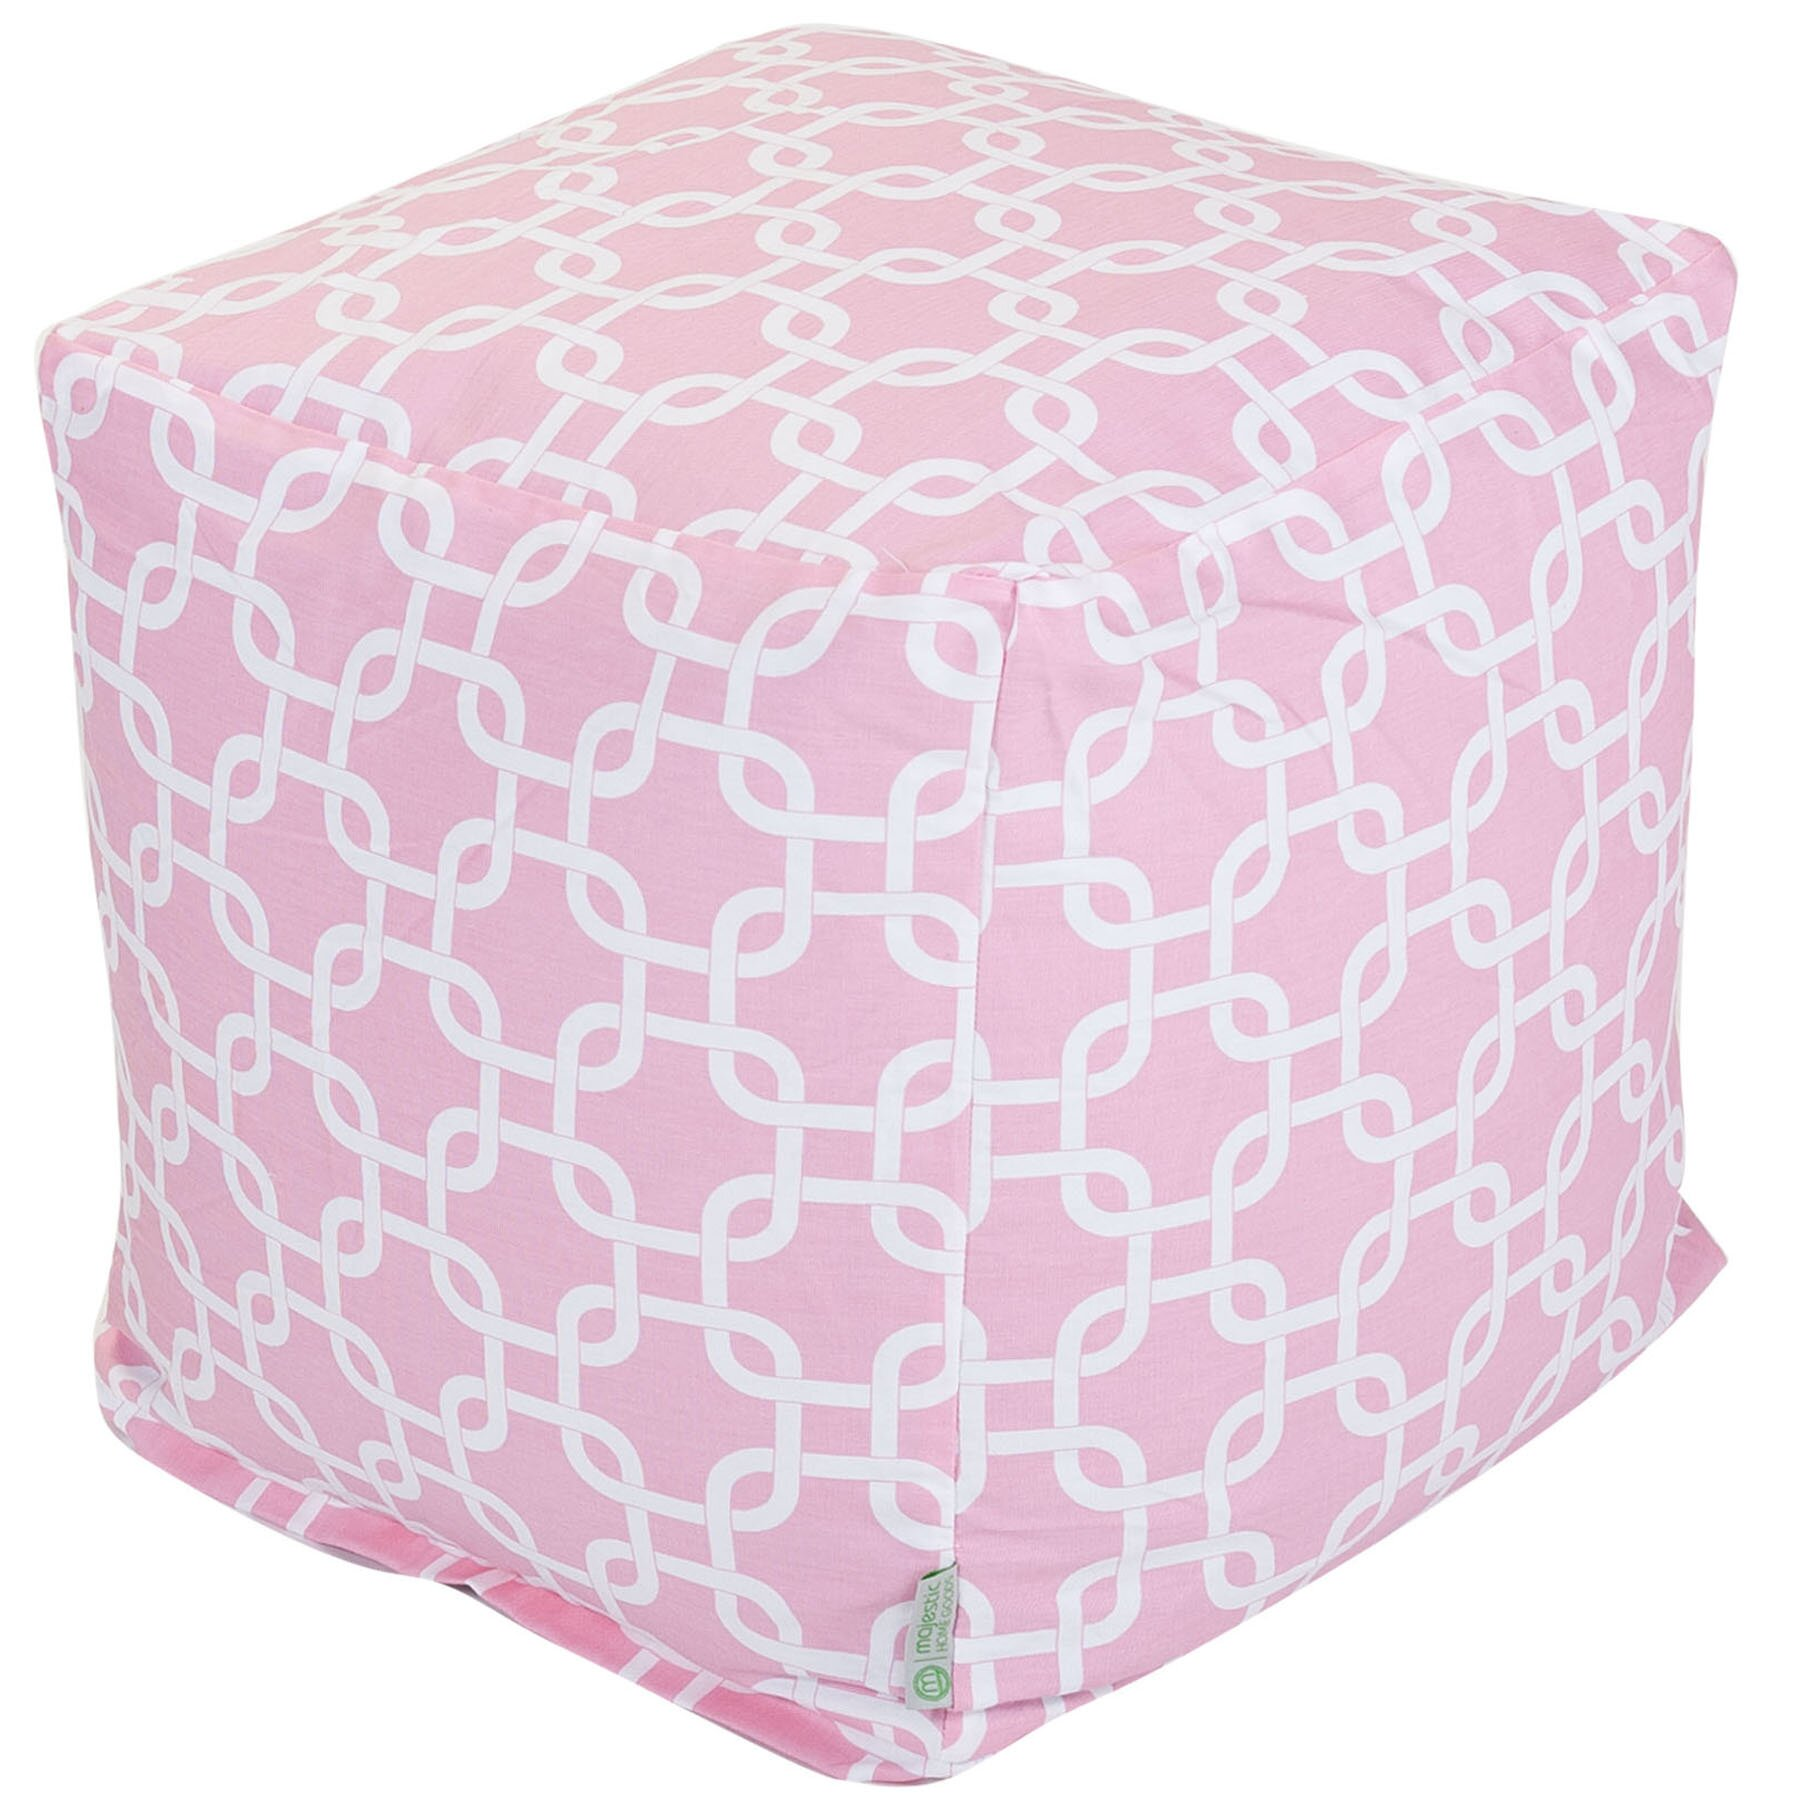 Majestic Home Goods Cube Ottoman Reviews Wayfair